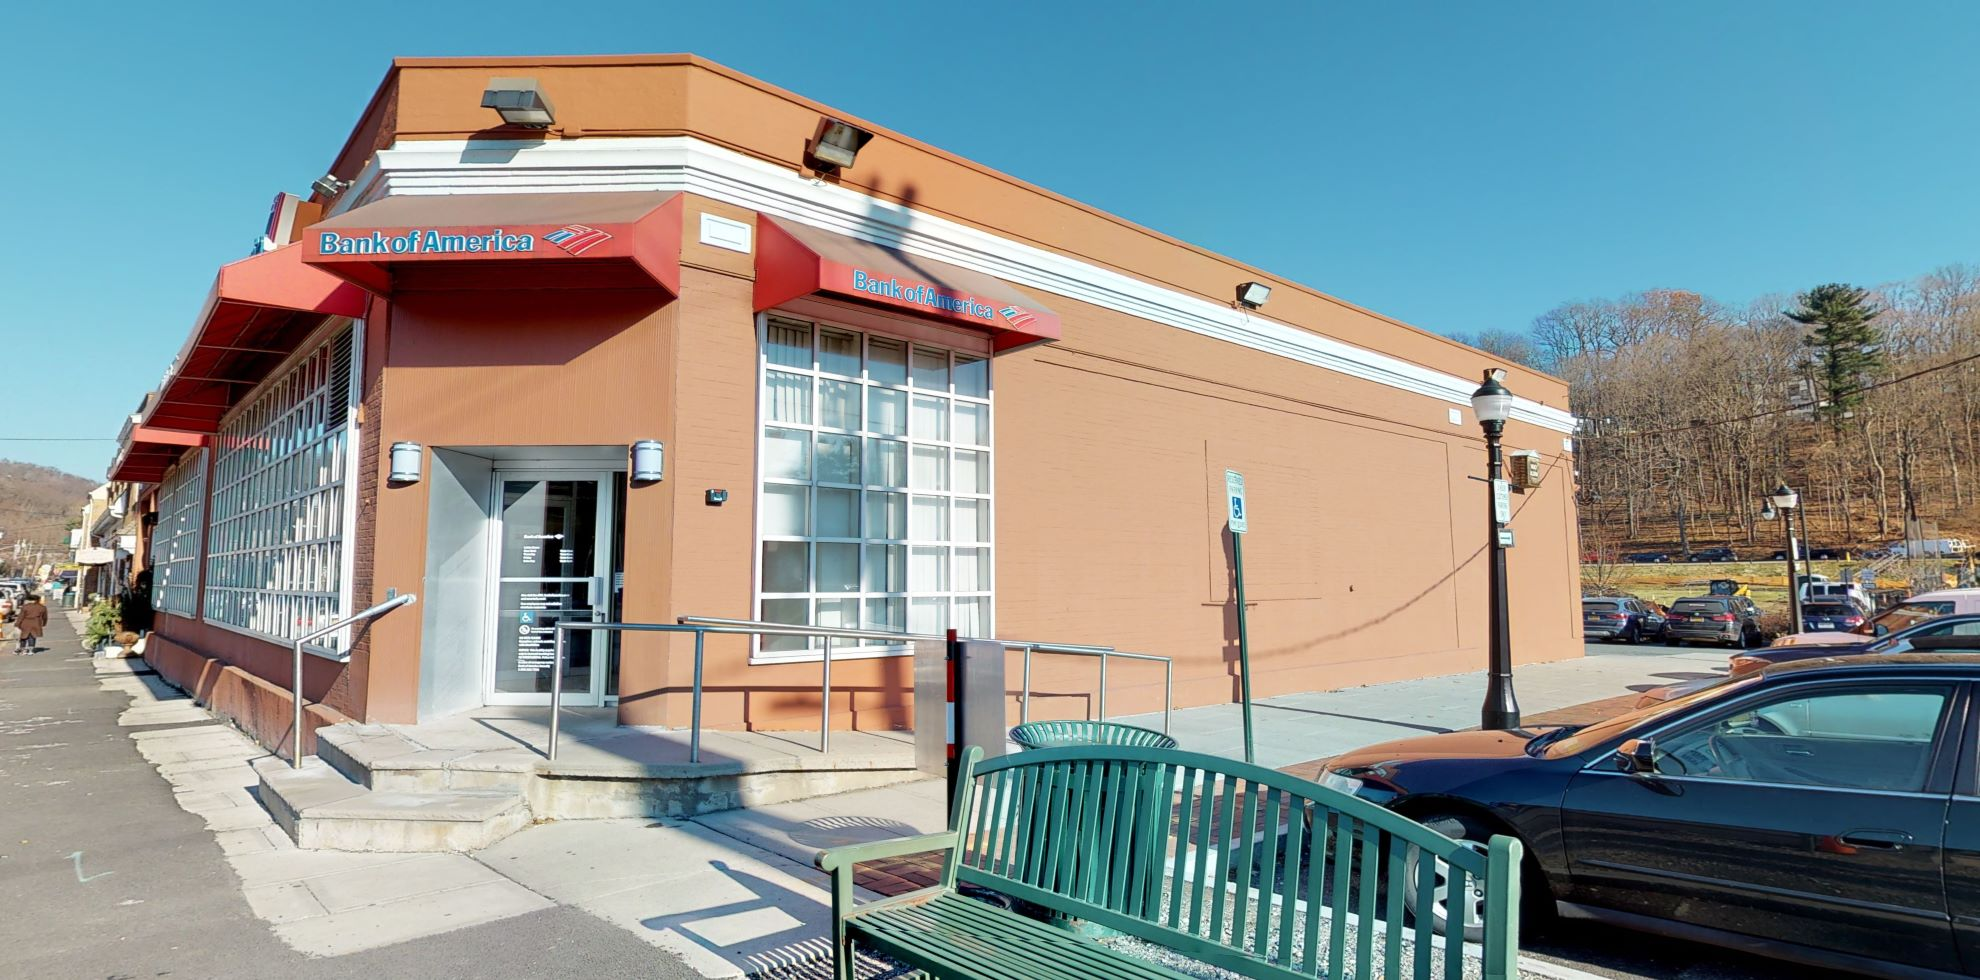 Bank of America financial center with walk-up ATM | 91 S Greeley Ave, Chappaqua, NY 10514